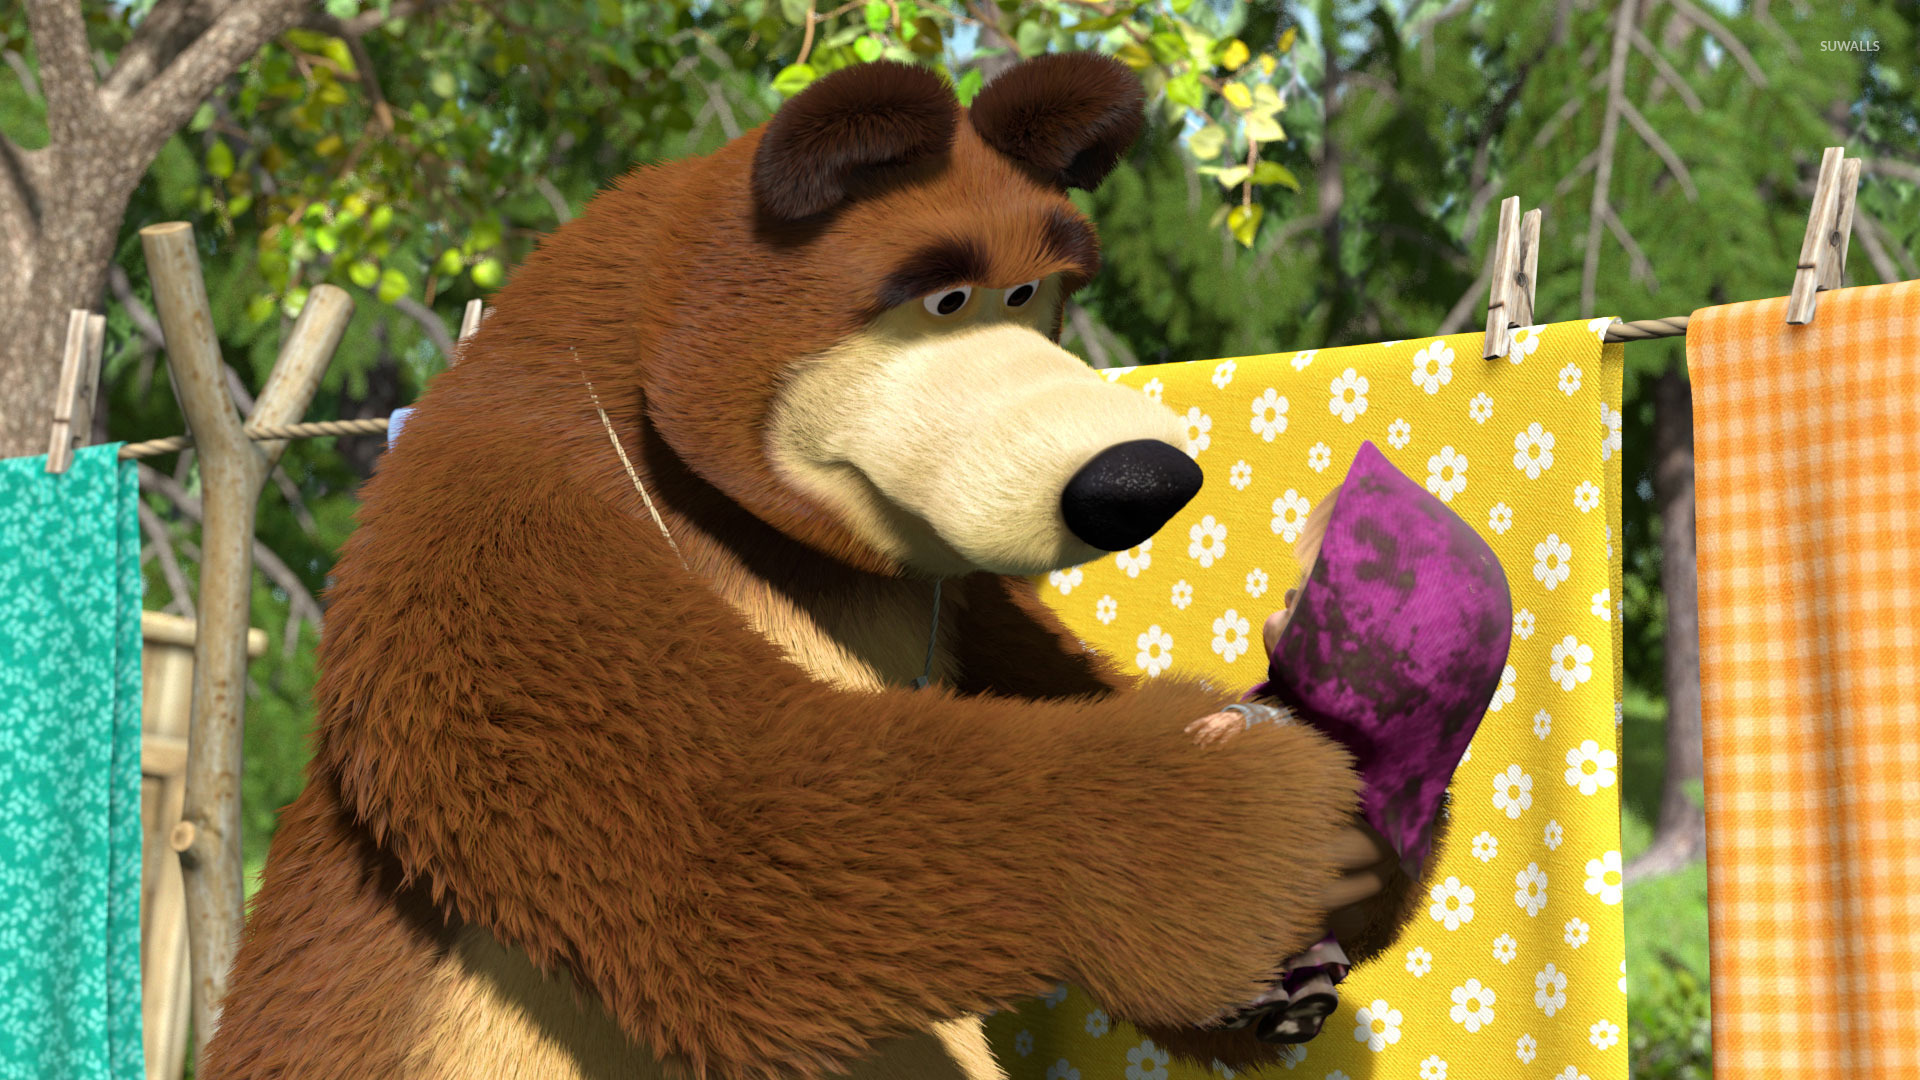 Cute Disney Wallpapers With Quotes Masha And The Bear 34 Wallpaper Cartoon Wallpapers